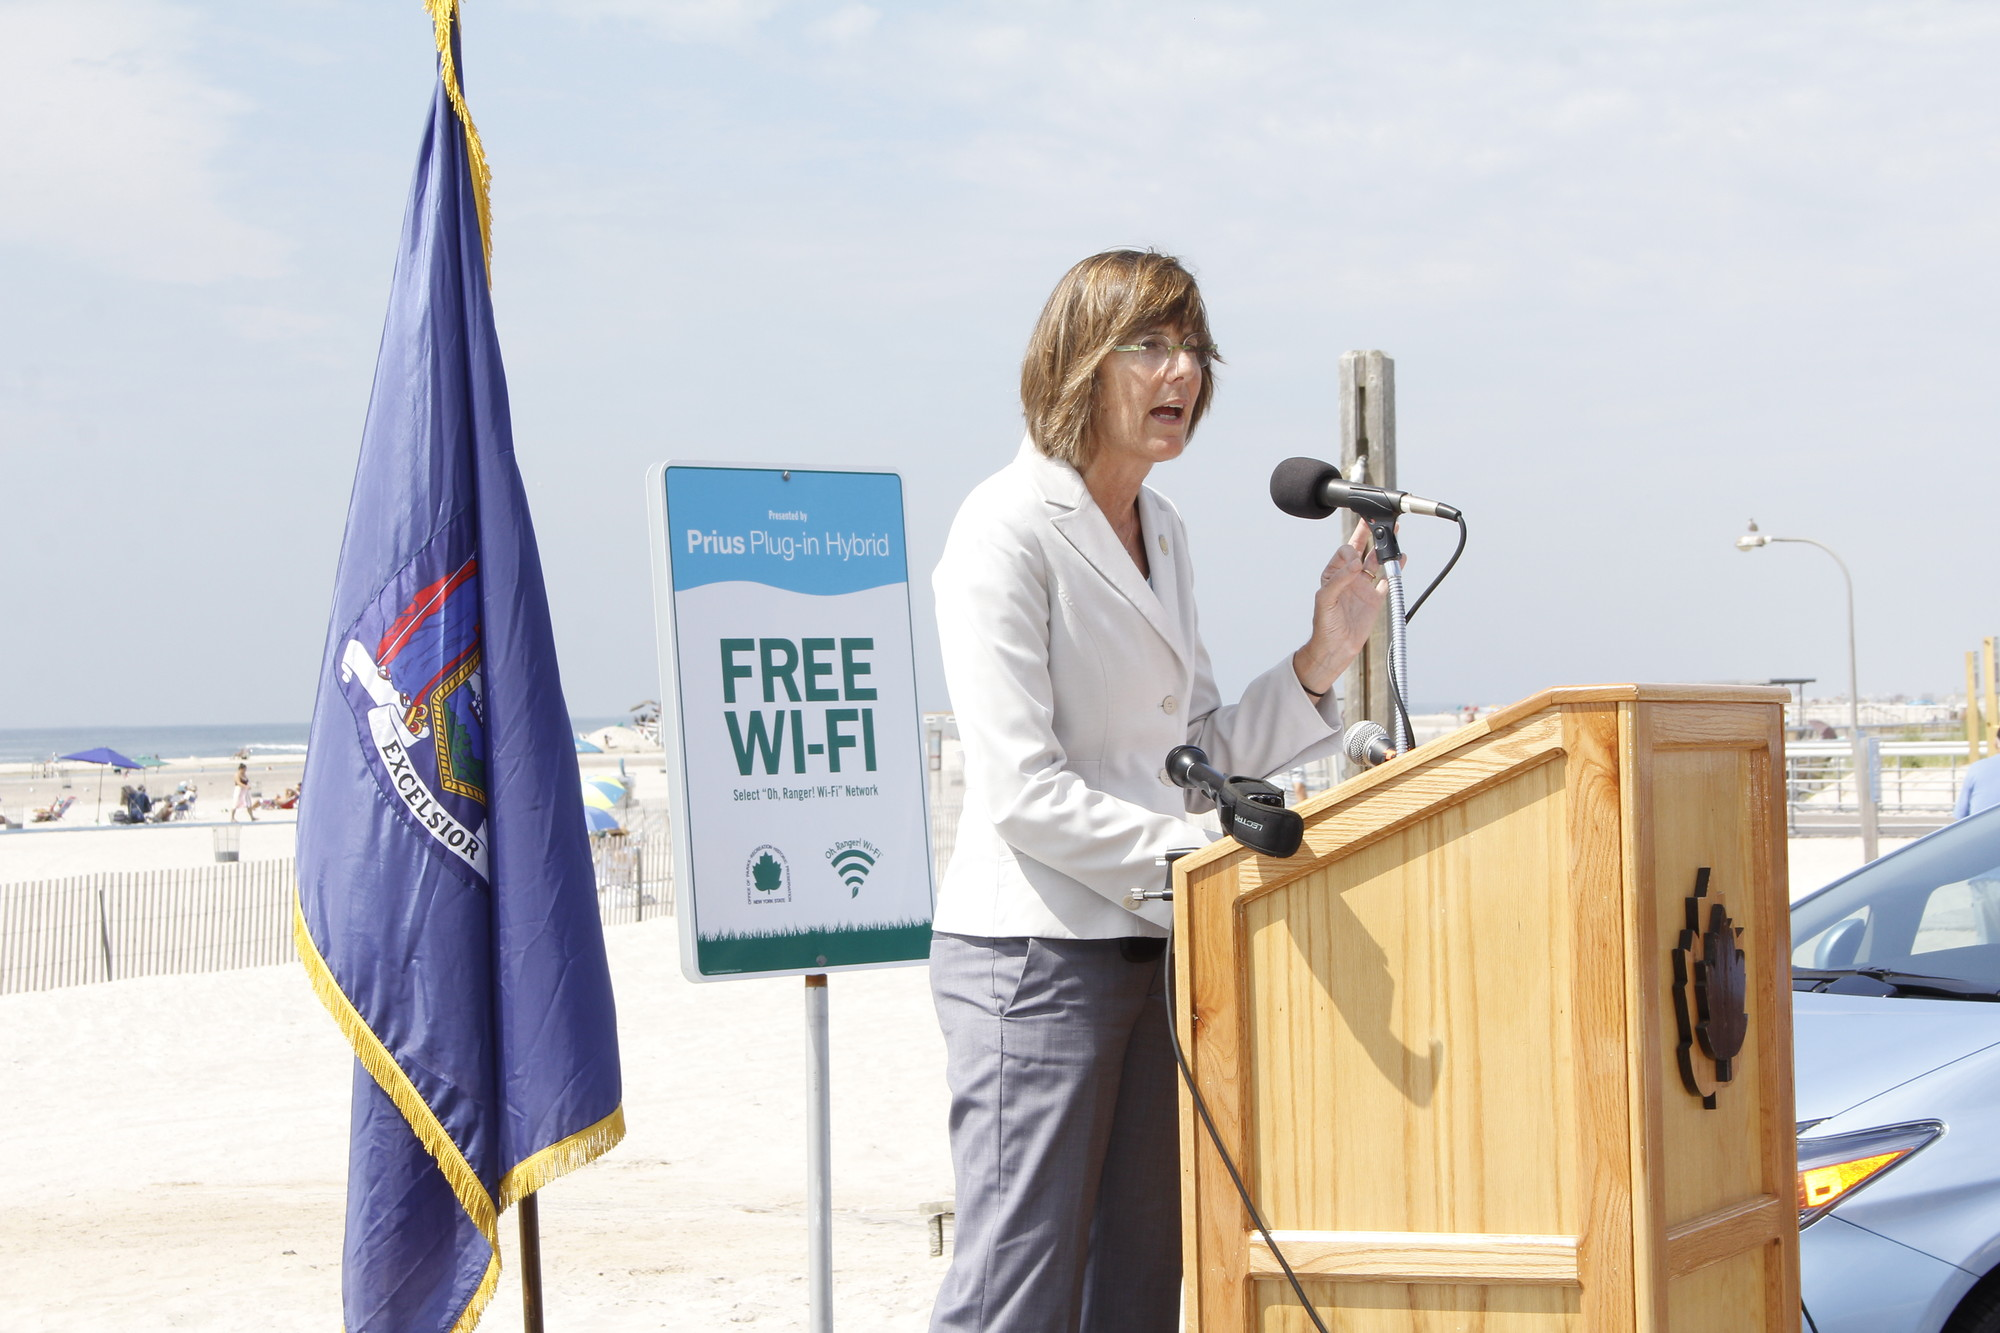 Commissioner Rose Harvey spoke about the new, free Wi-Fi that is currently available at Jones Beach from Field 6 to the West Bathhouse, and will be expanding further down the beach in the future.